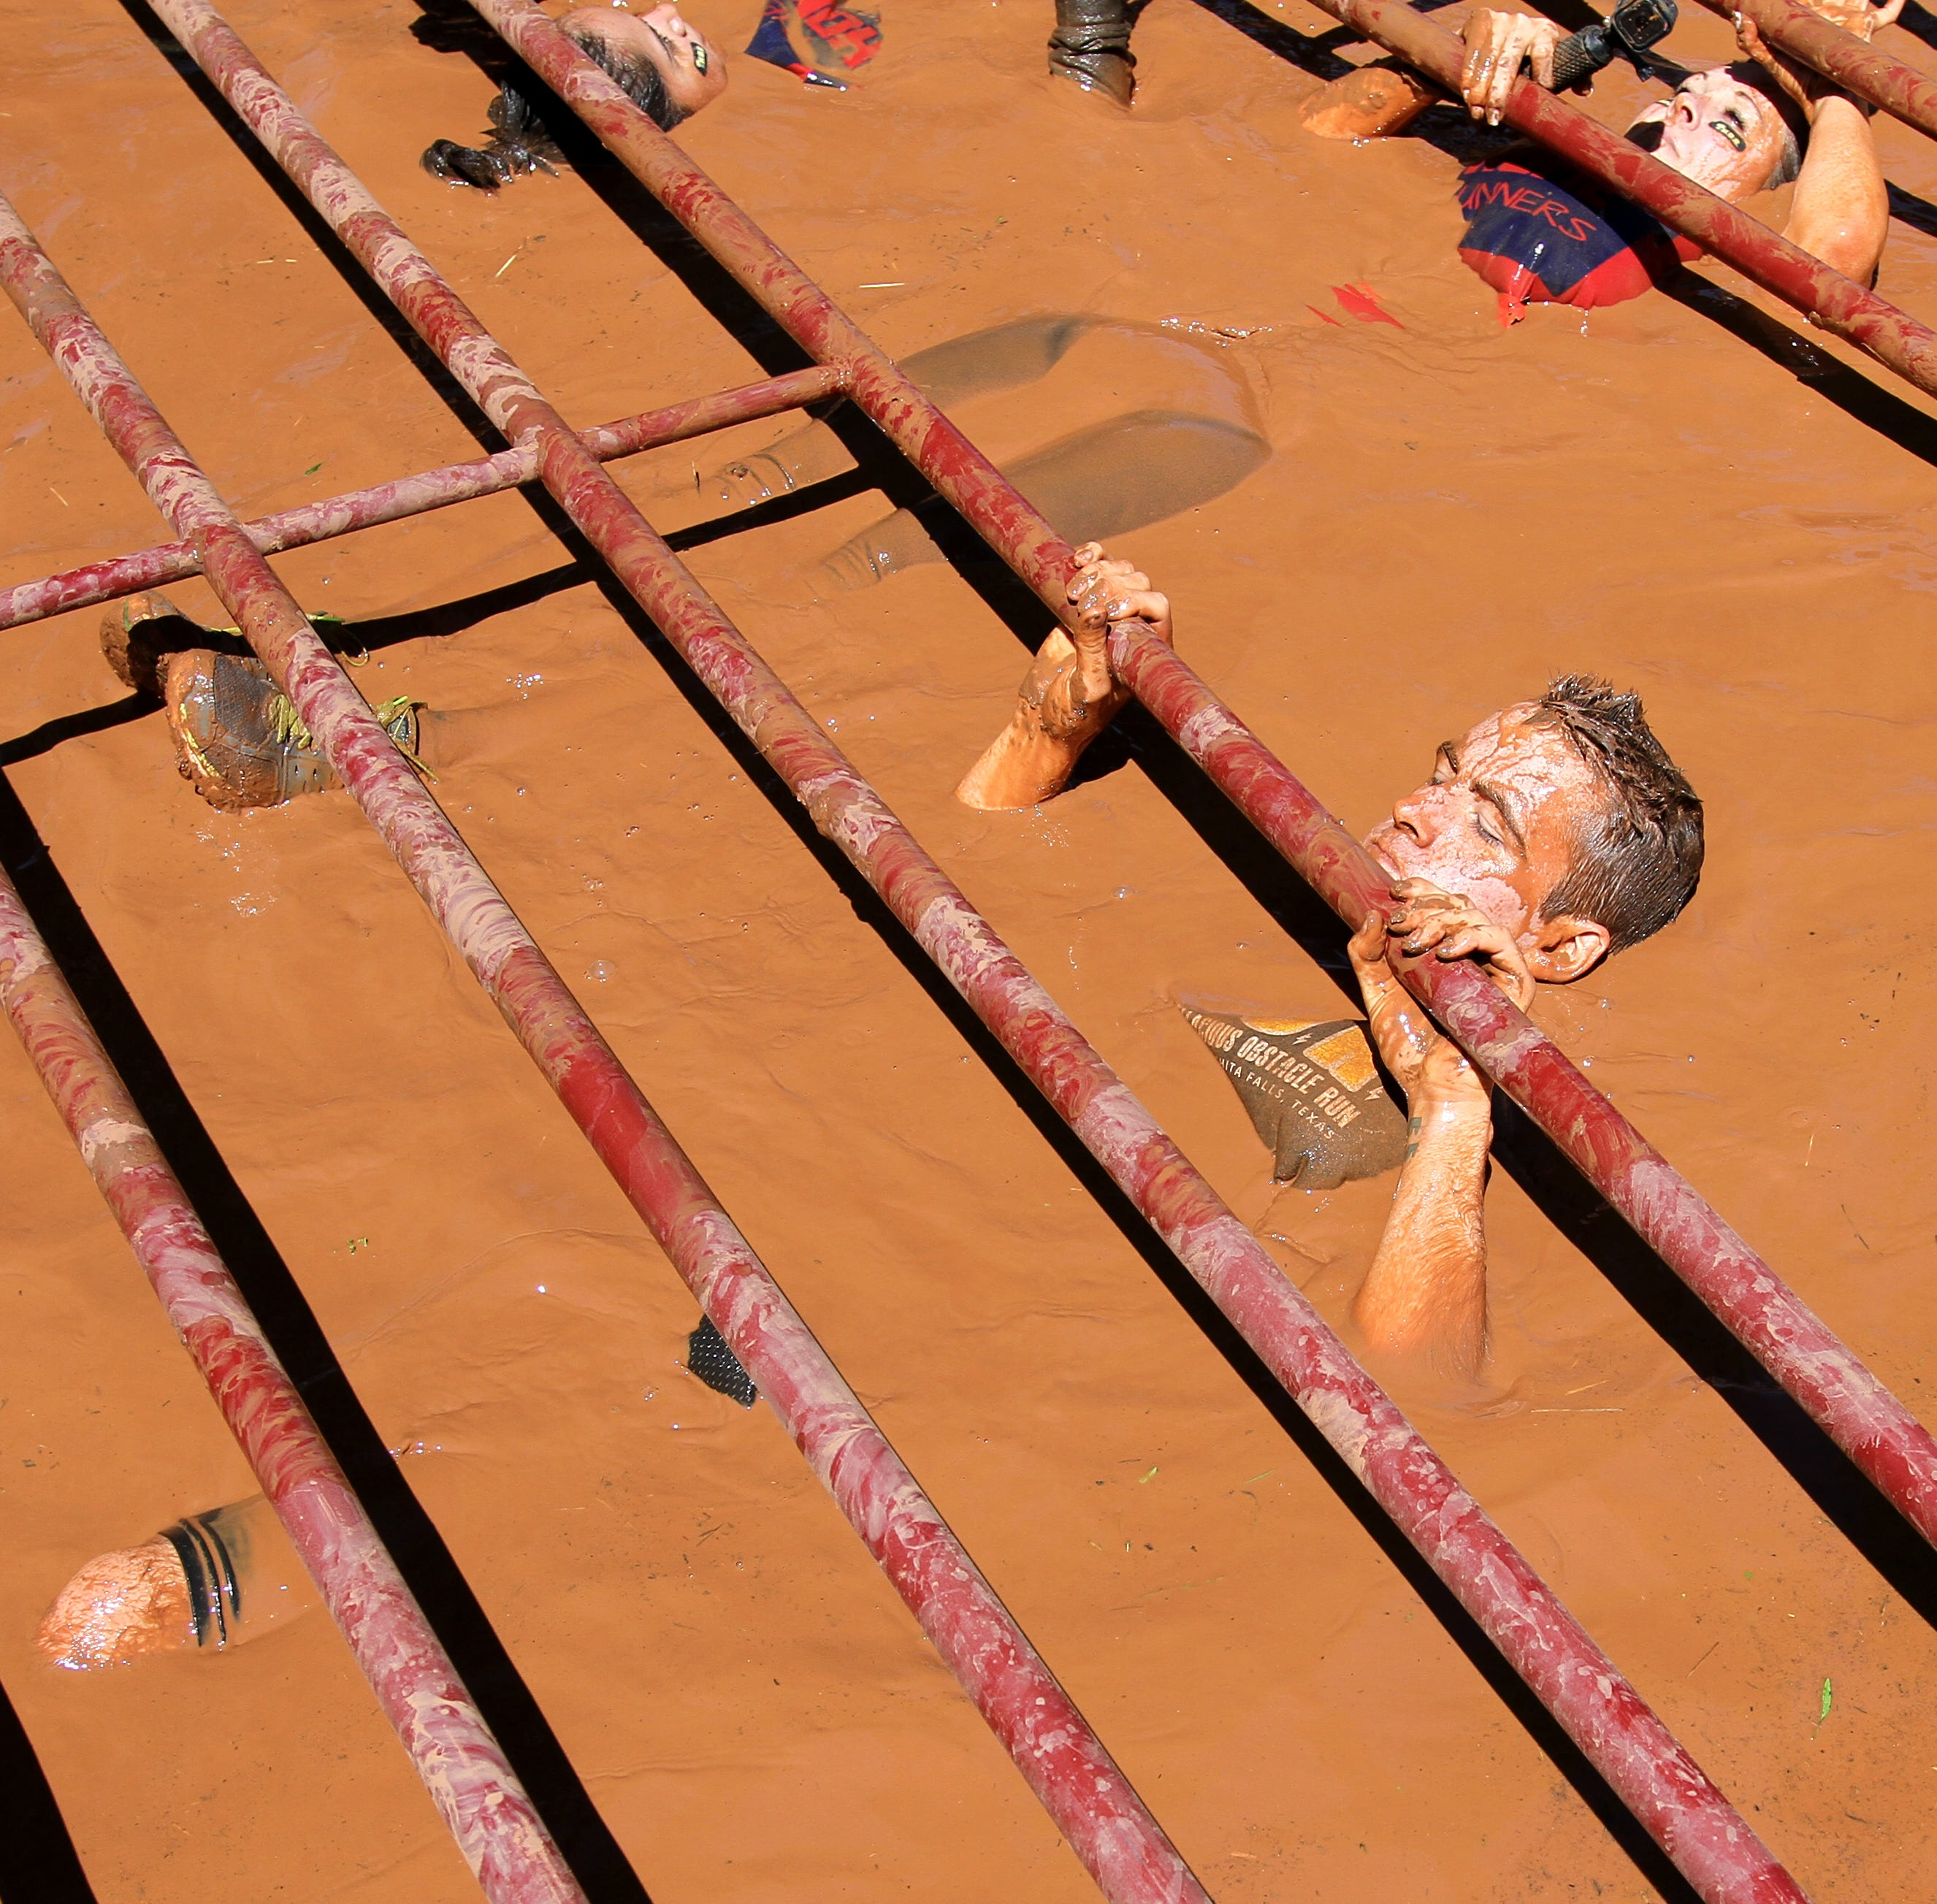 Runners play in the mud in Texoma's Hellacious Obstacle Run